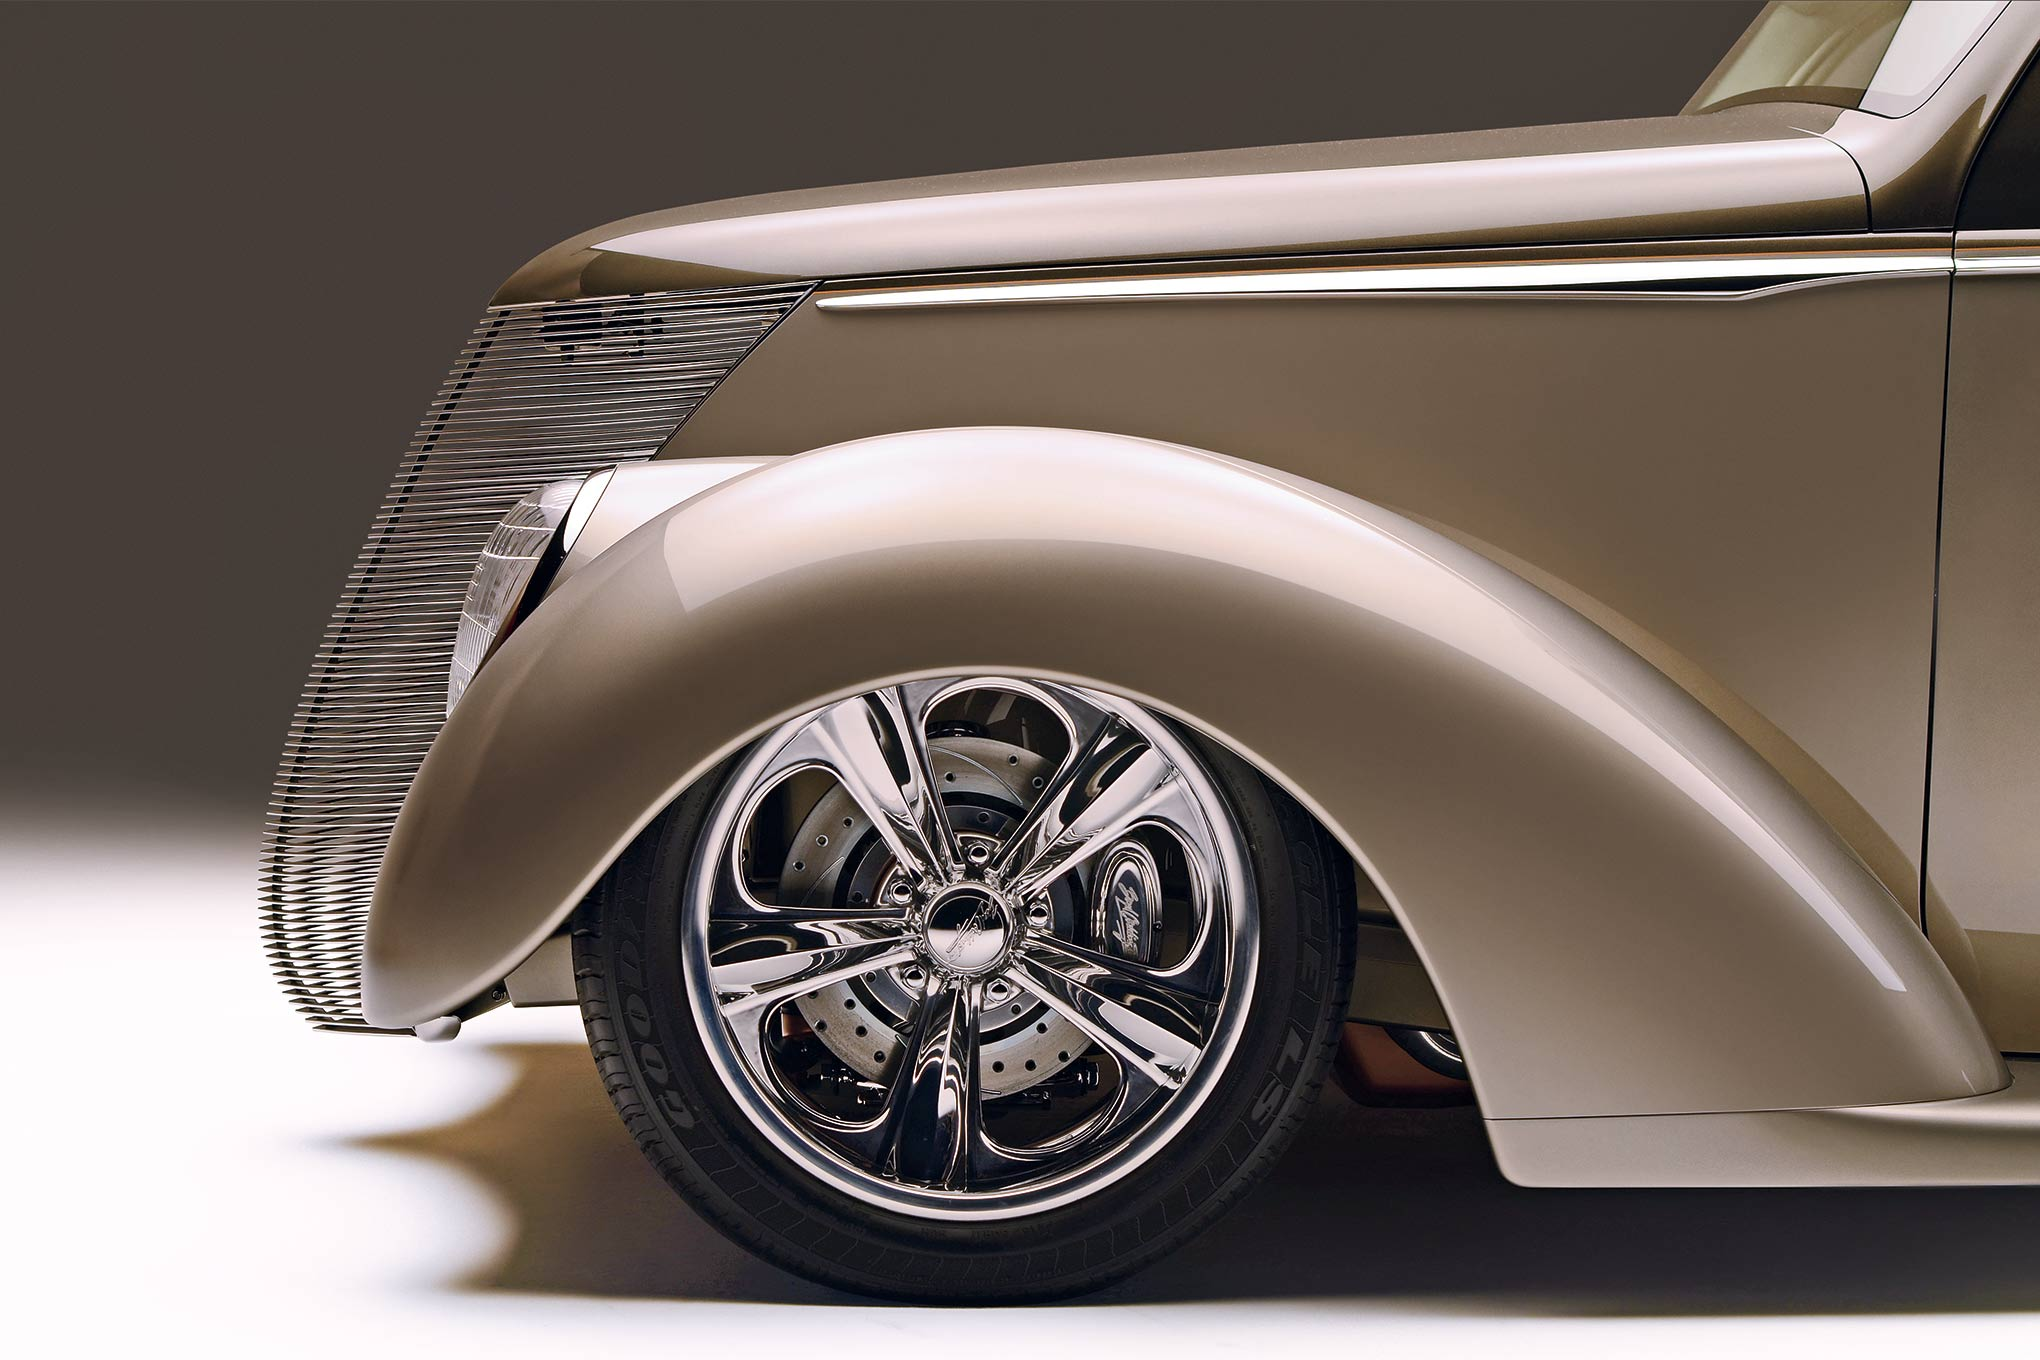 Hutton and Schmidt reshaped  the fender openings to better suit  the wheel's new location. They also laid back the grille and headlight openings along the lines of the A-pillars. The side-trim shape that Eric Brockmeyer designed and Jesse Greening cut mimics the spears Packard made famous on its cars of the '30s and '40s.